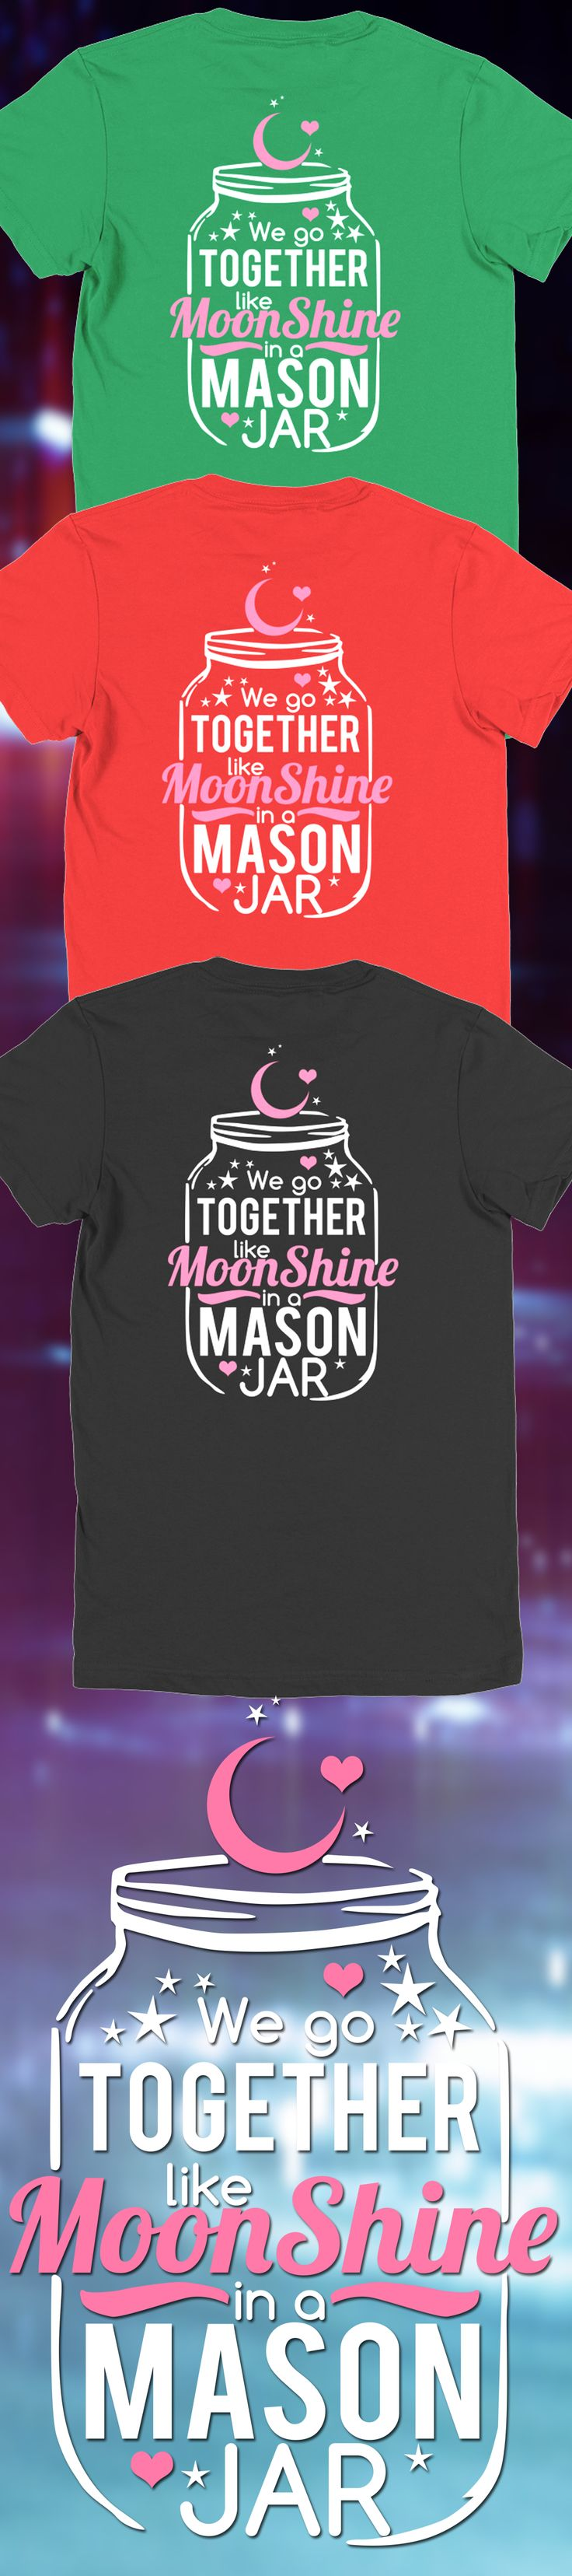 We Go Together Like Moonshine in a Mason Jar T-Shirt. Not sold in stores and only 2 days left for free shipping! Grab yours or gift it to a friend, you will both love it 😘